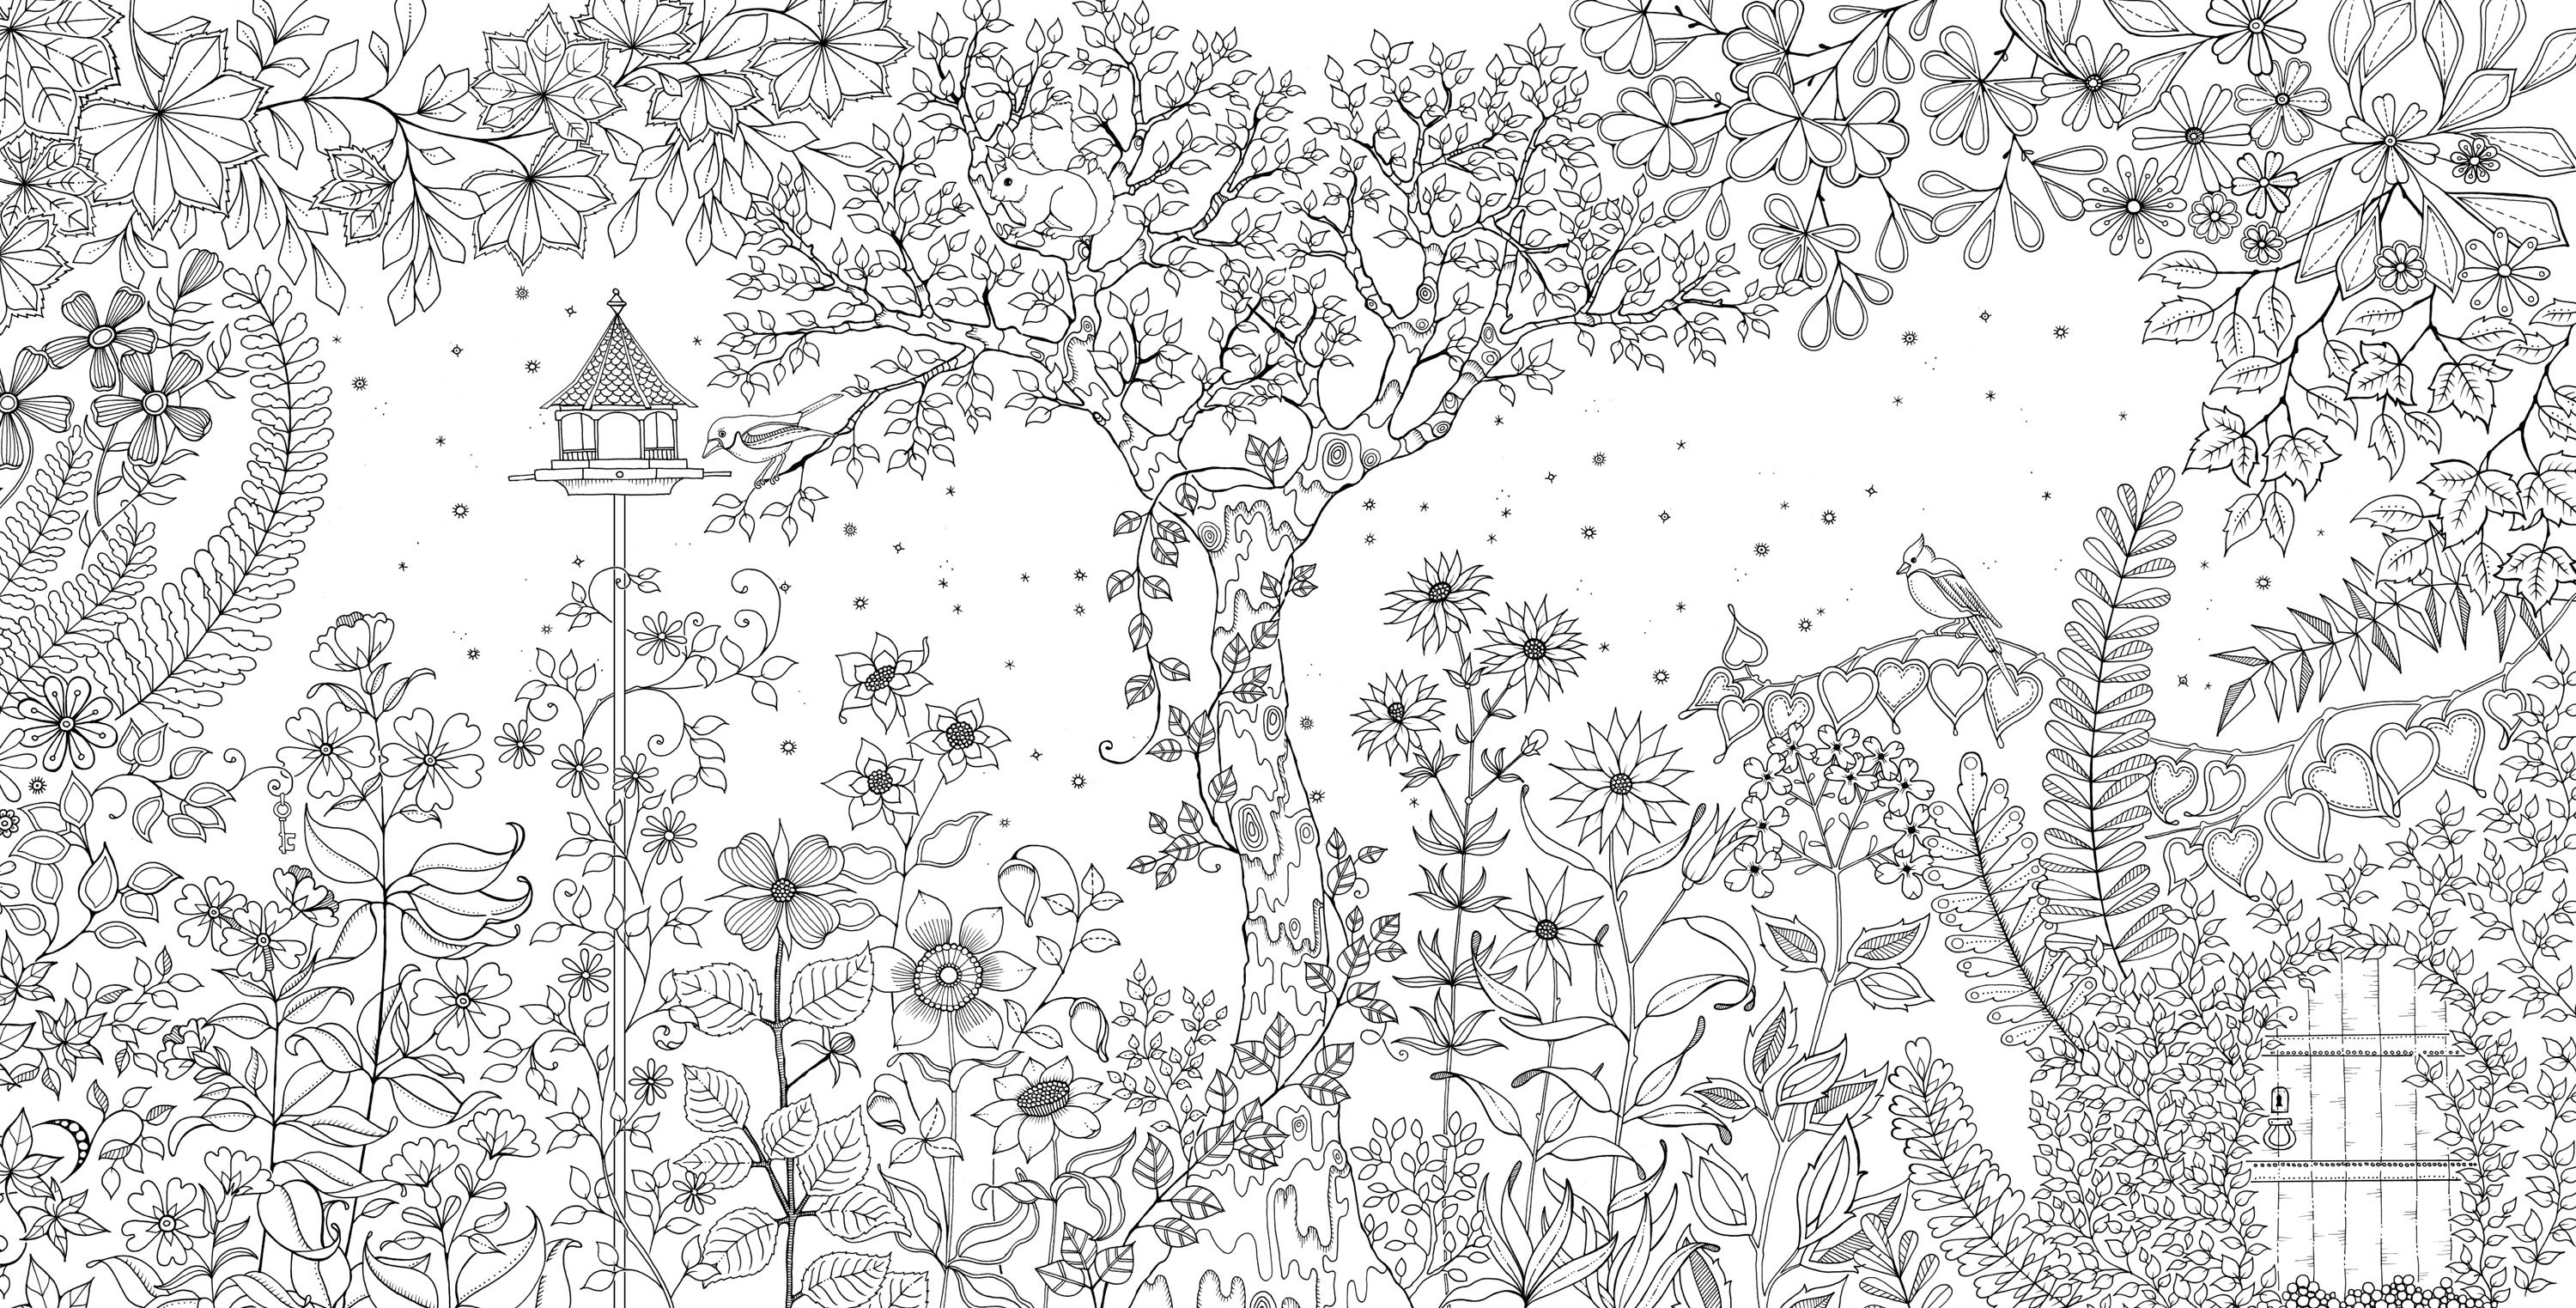 This is a graphic of Obsessed coloring books secret garden